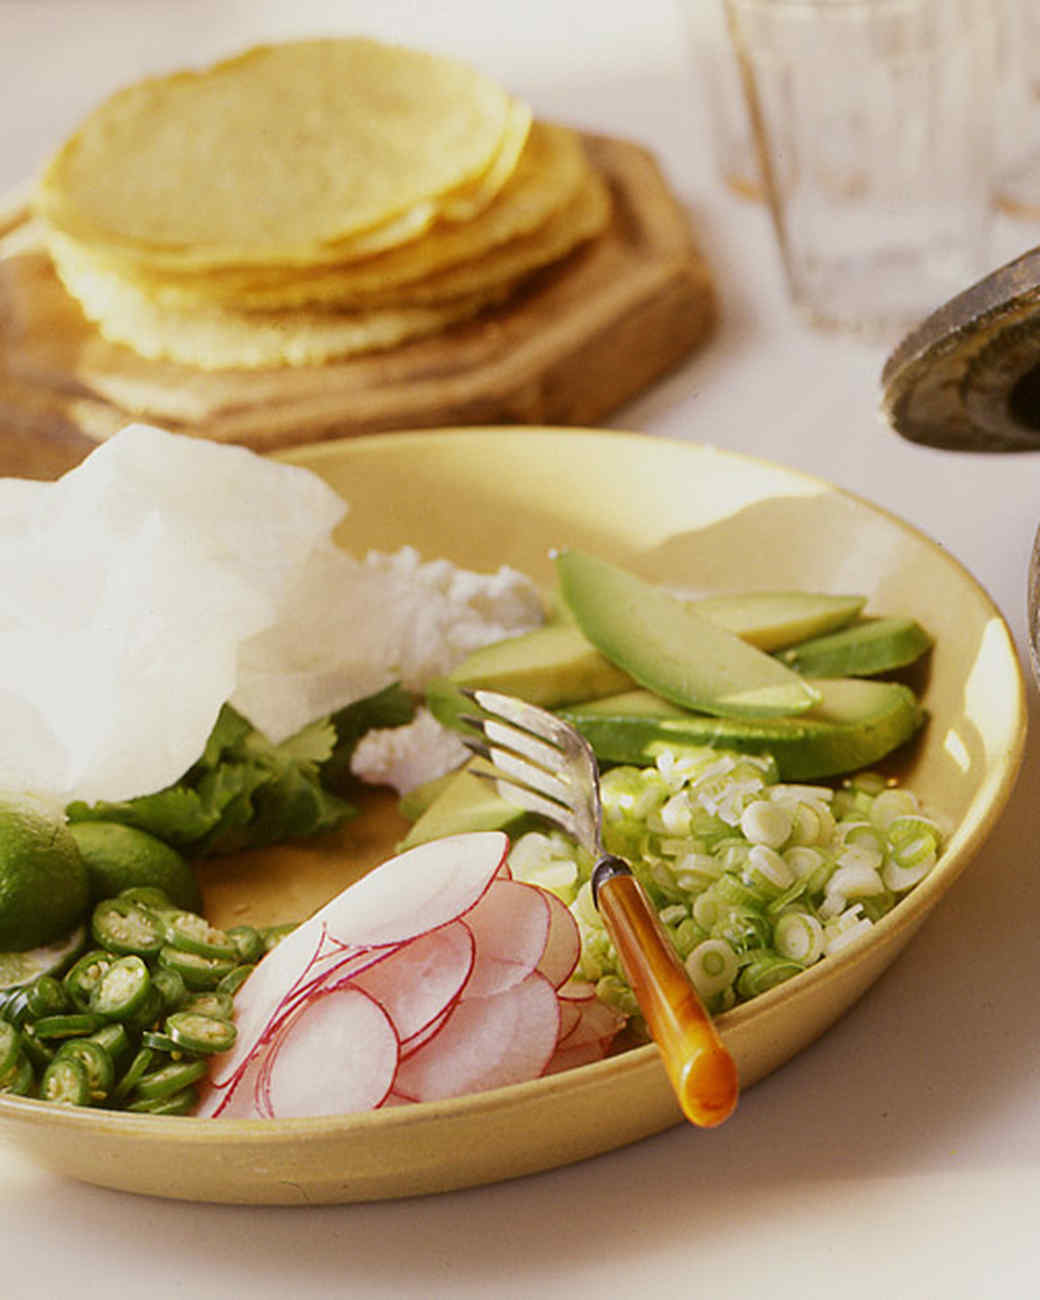 Posole with Garnishes